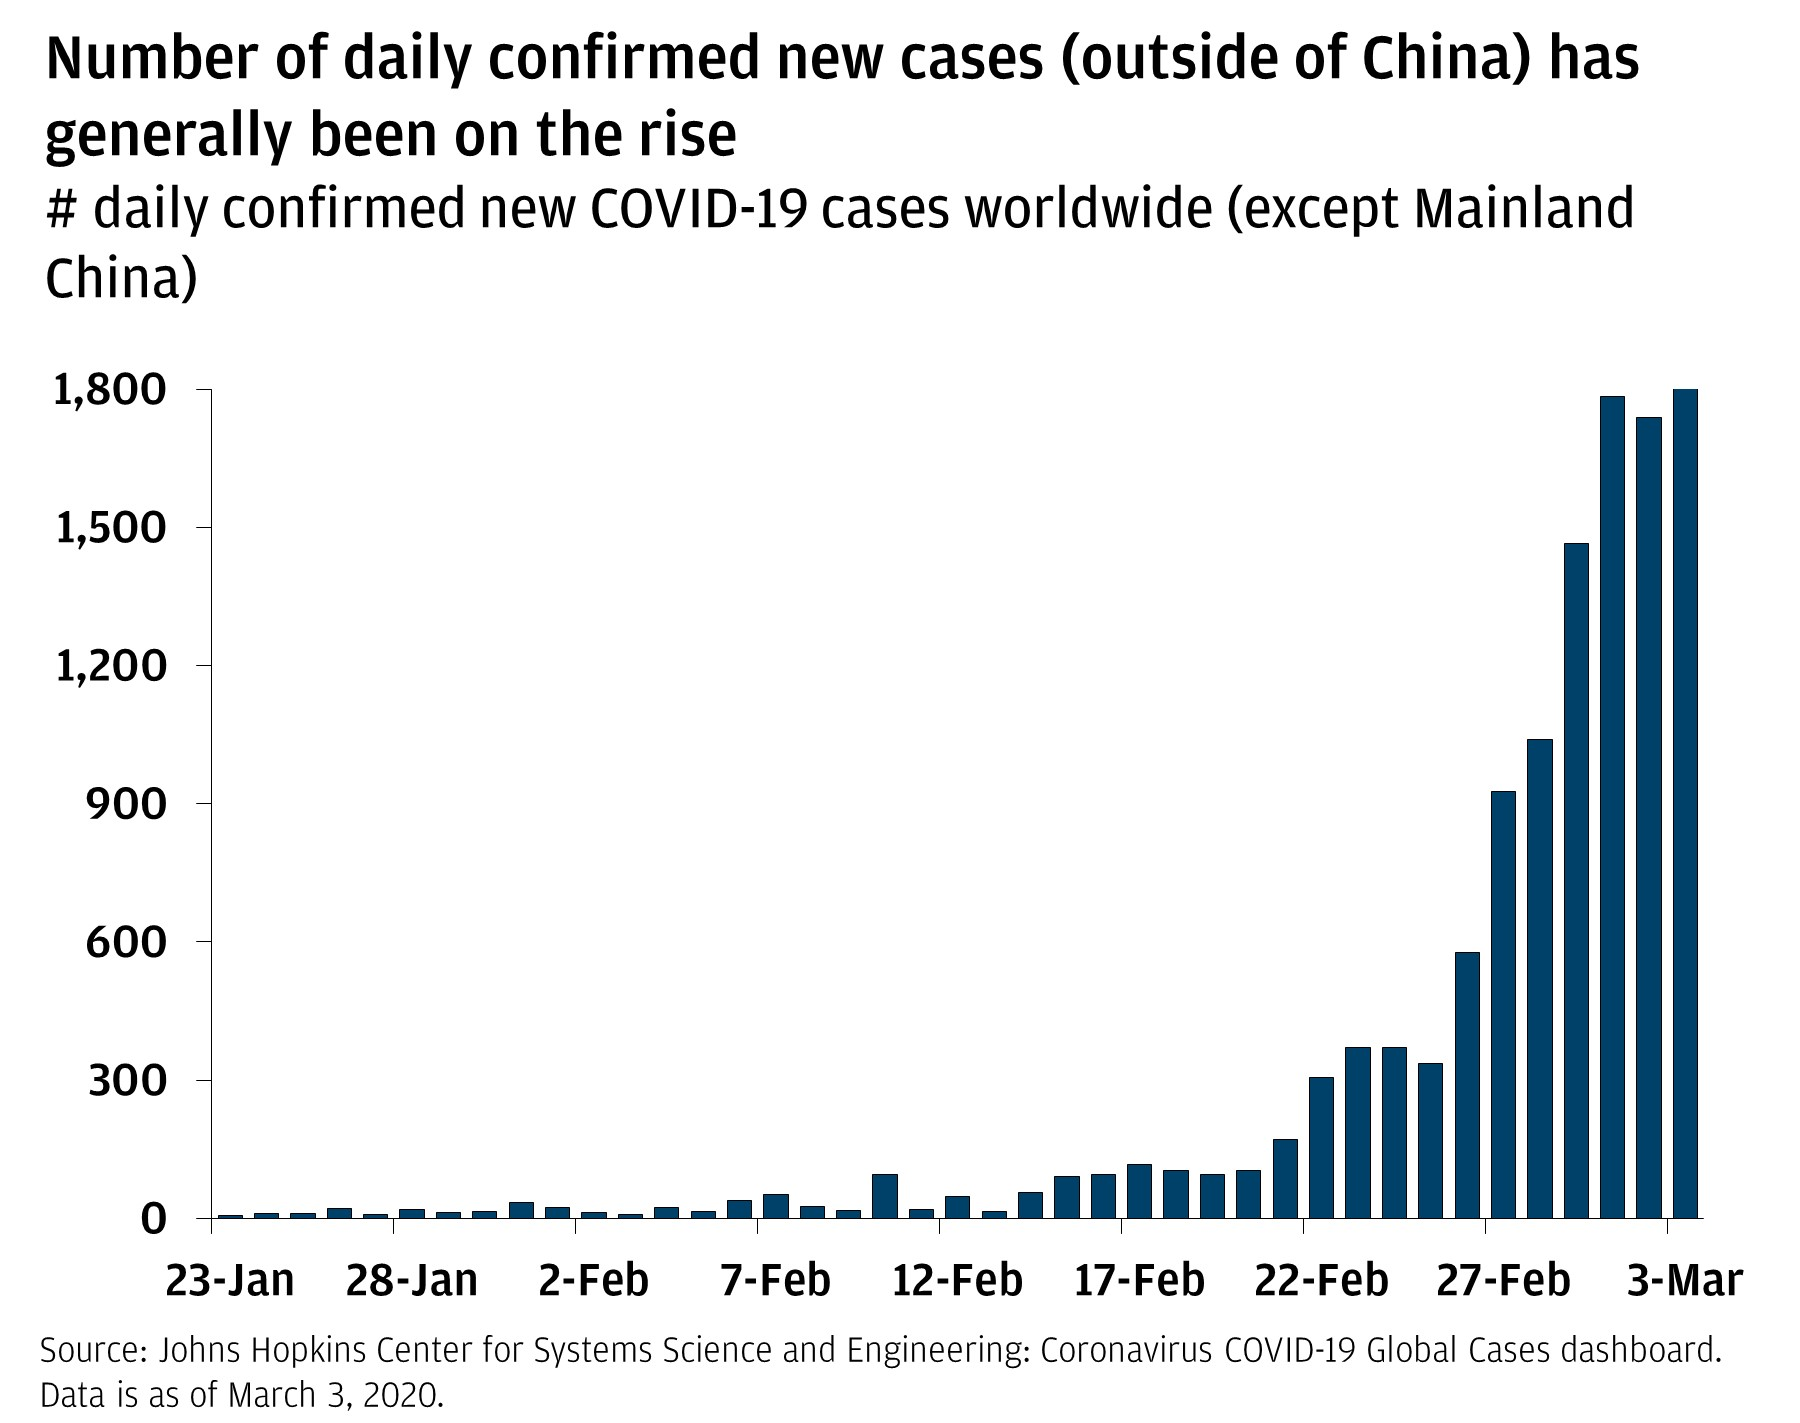 The bar chart shows the number of confirmed new cases outside of mainland China from January 23, 2020, through March 3, 2020. It shows that the number has been increasing.